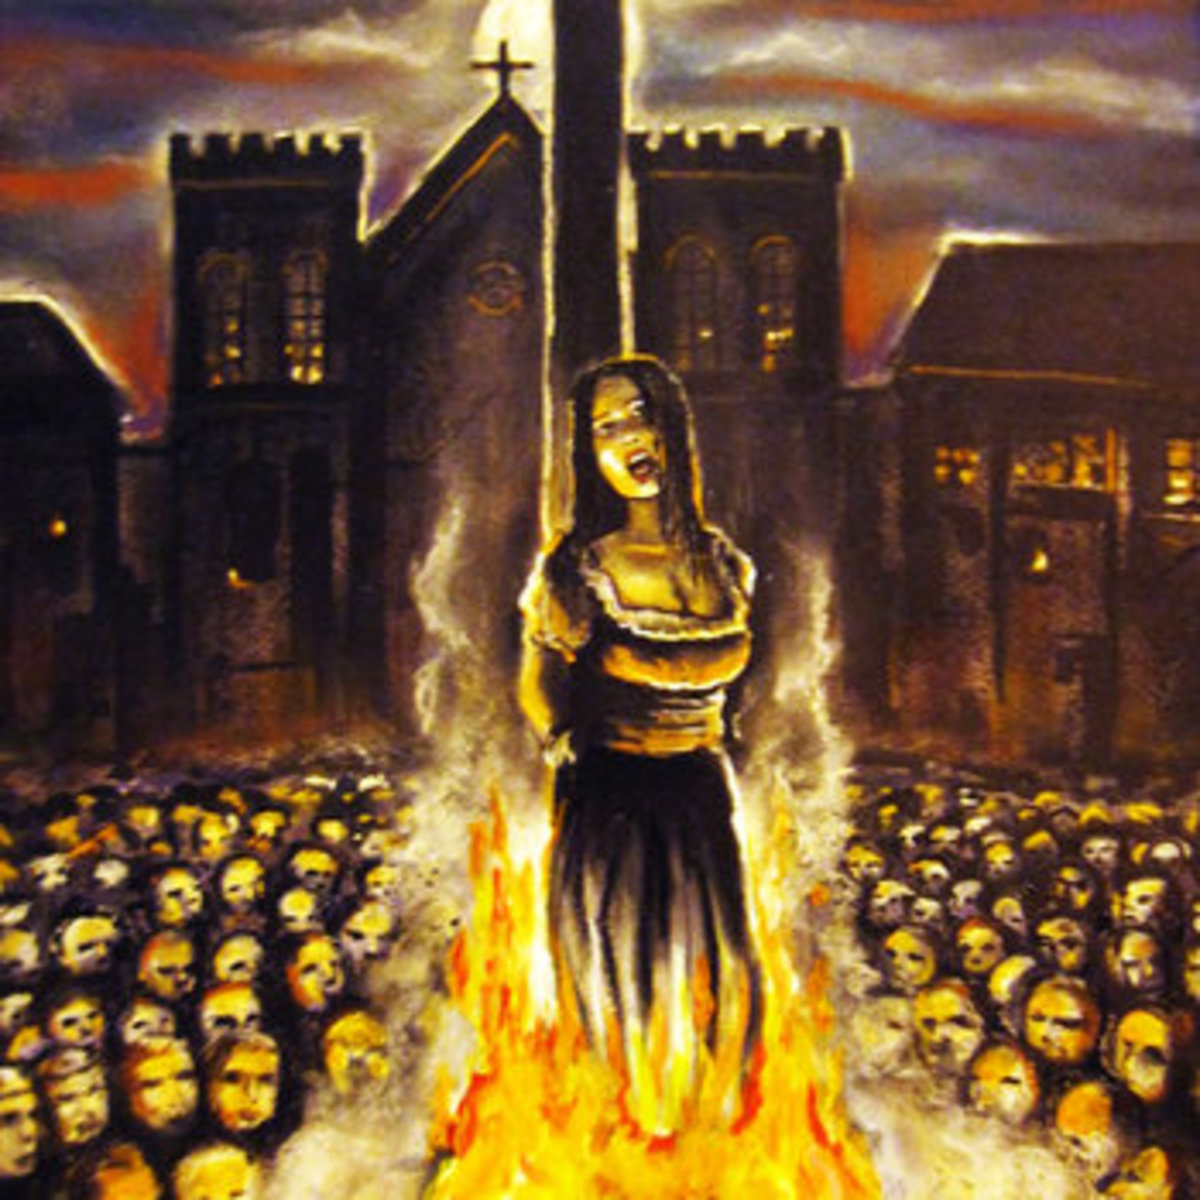 Christians burned Pagans who refused to convert